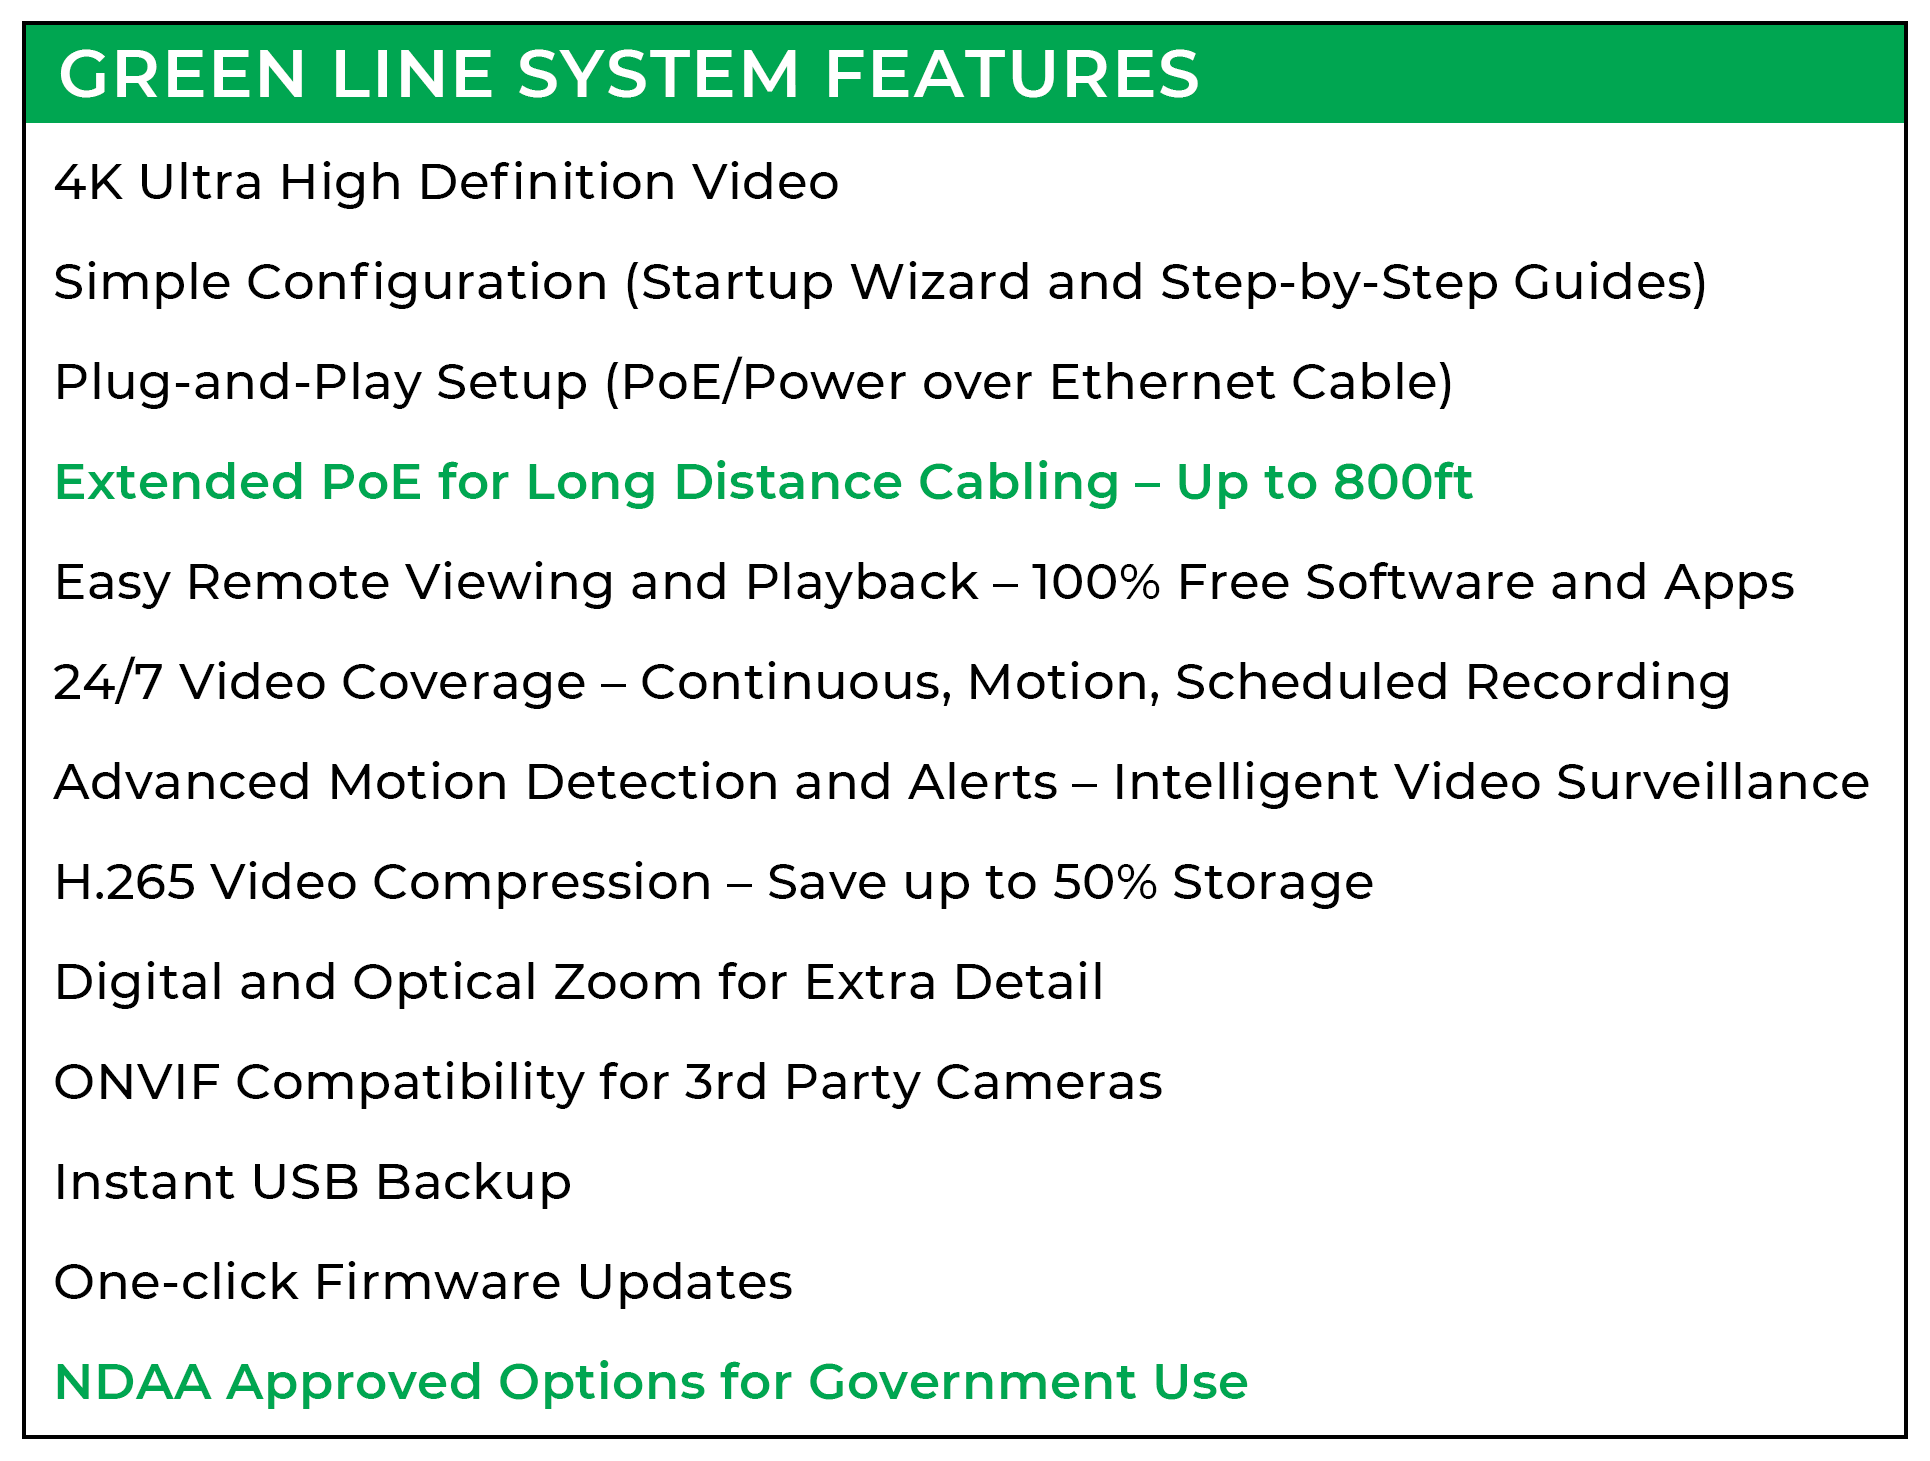 green-line-system-features2.png